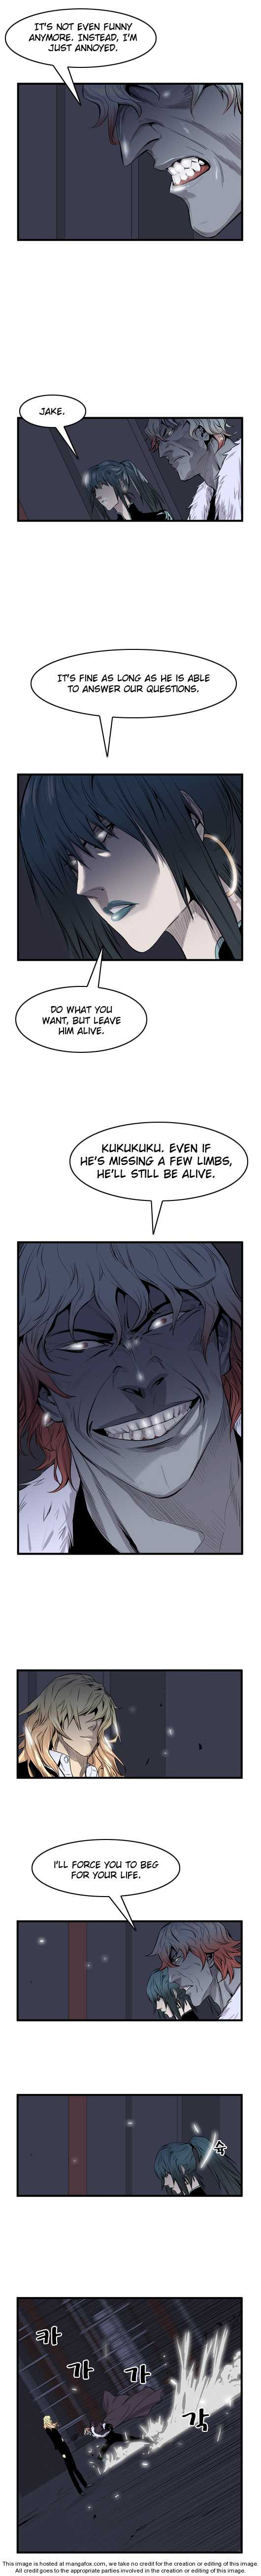 Noblesse 45 Page 2